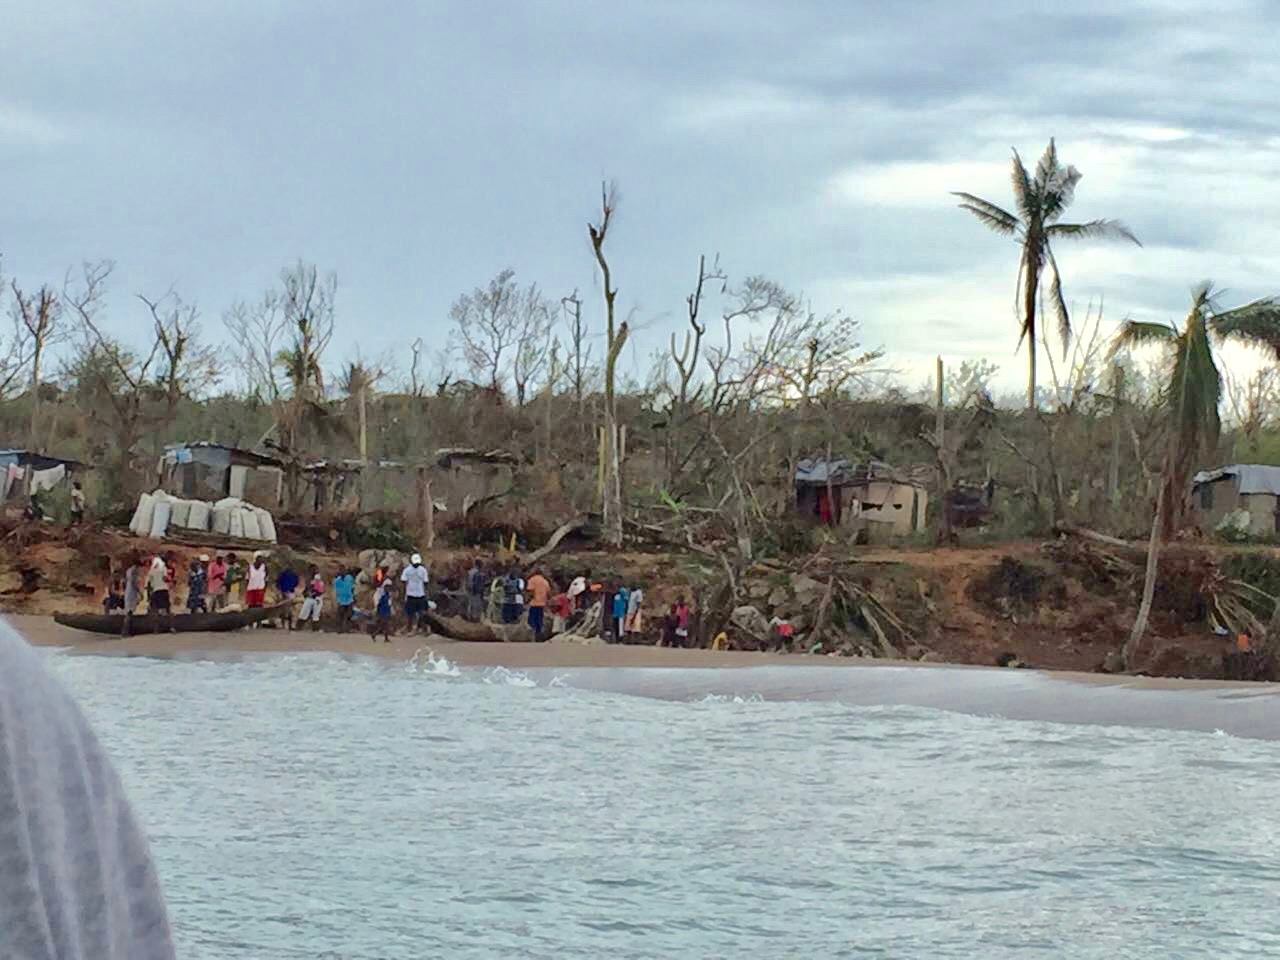 Certain areas are only accessible by boat and had not yet received any aid.